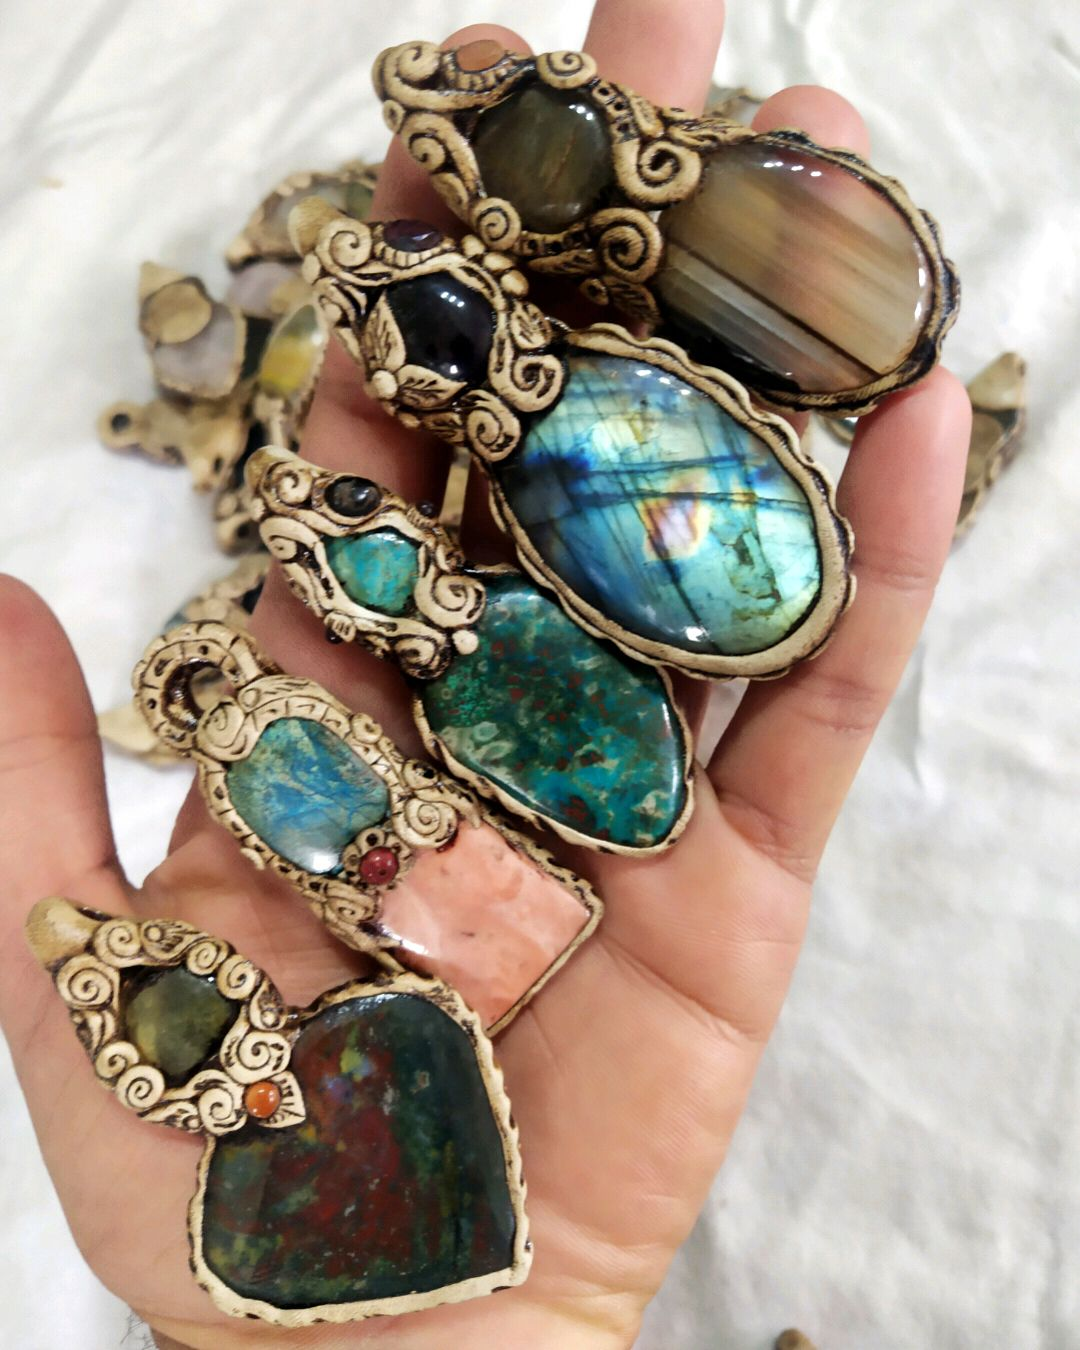 Real And Natural  Gem Stone Crystal To Make Ring Necklace or Pendant In Gold Or Silver